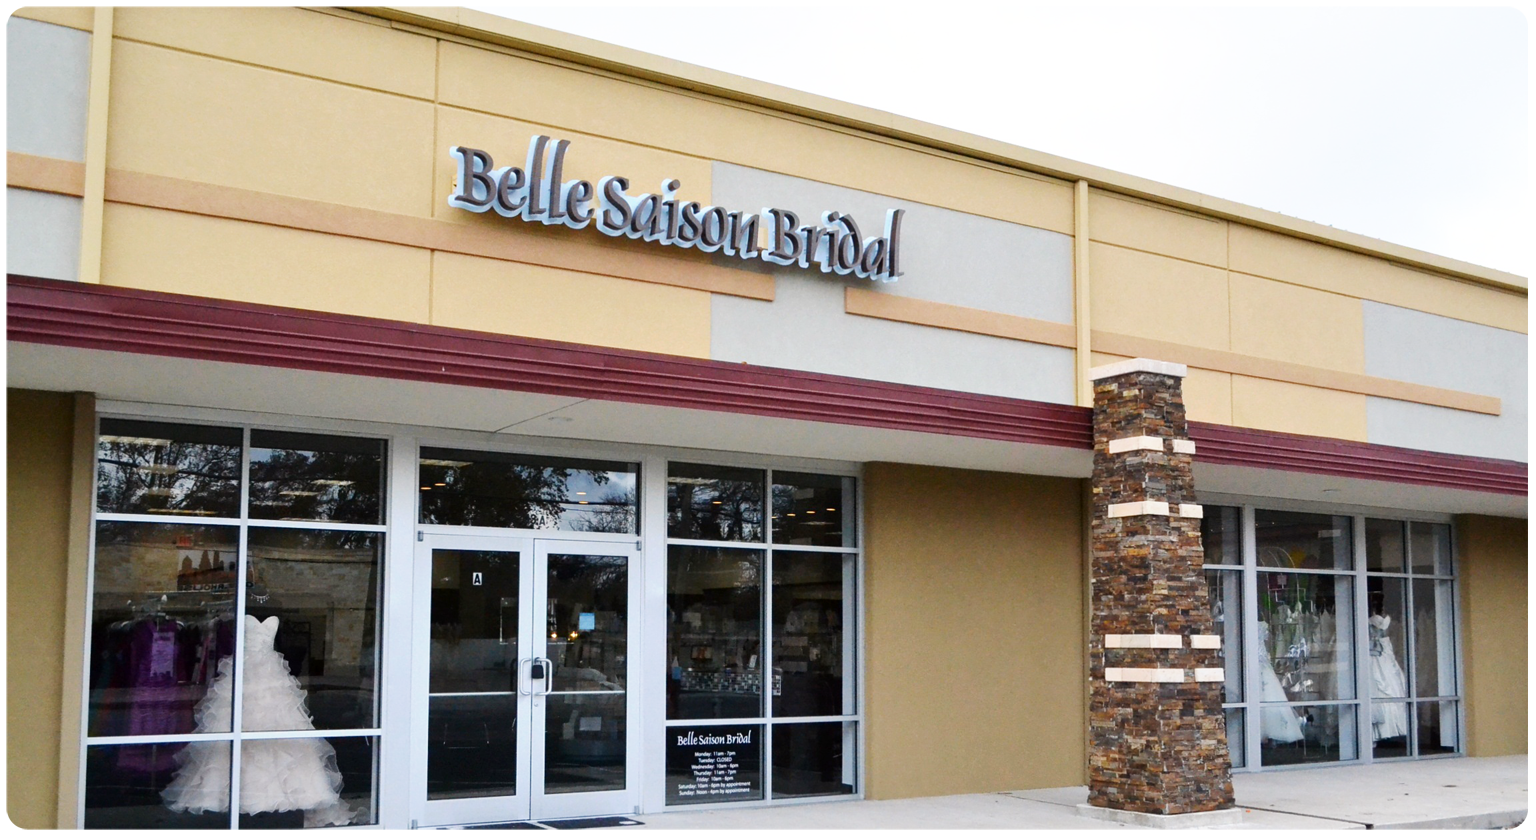 Belle saison bridal shop in austin texasbelle saison for Wedding dress shops austin tx